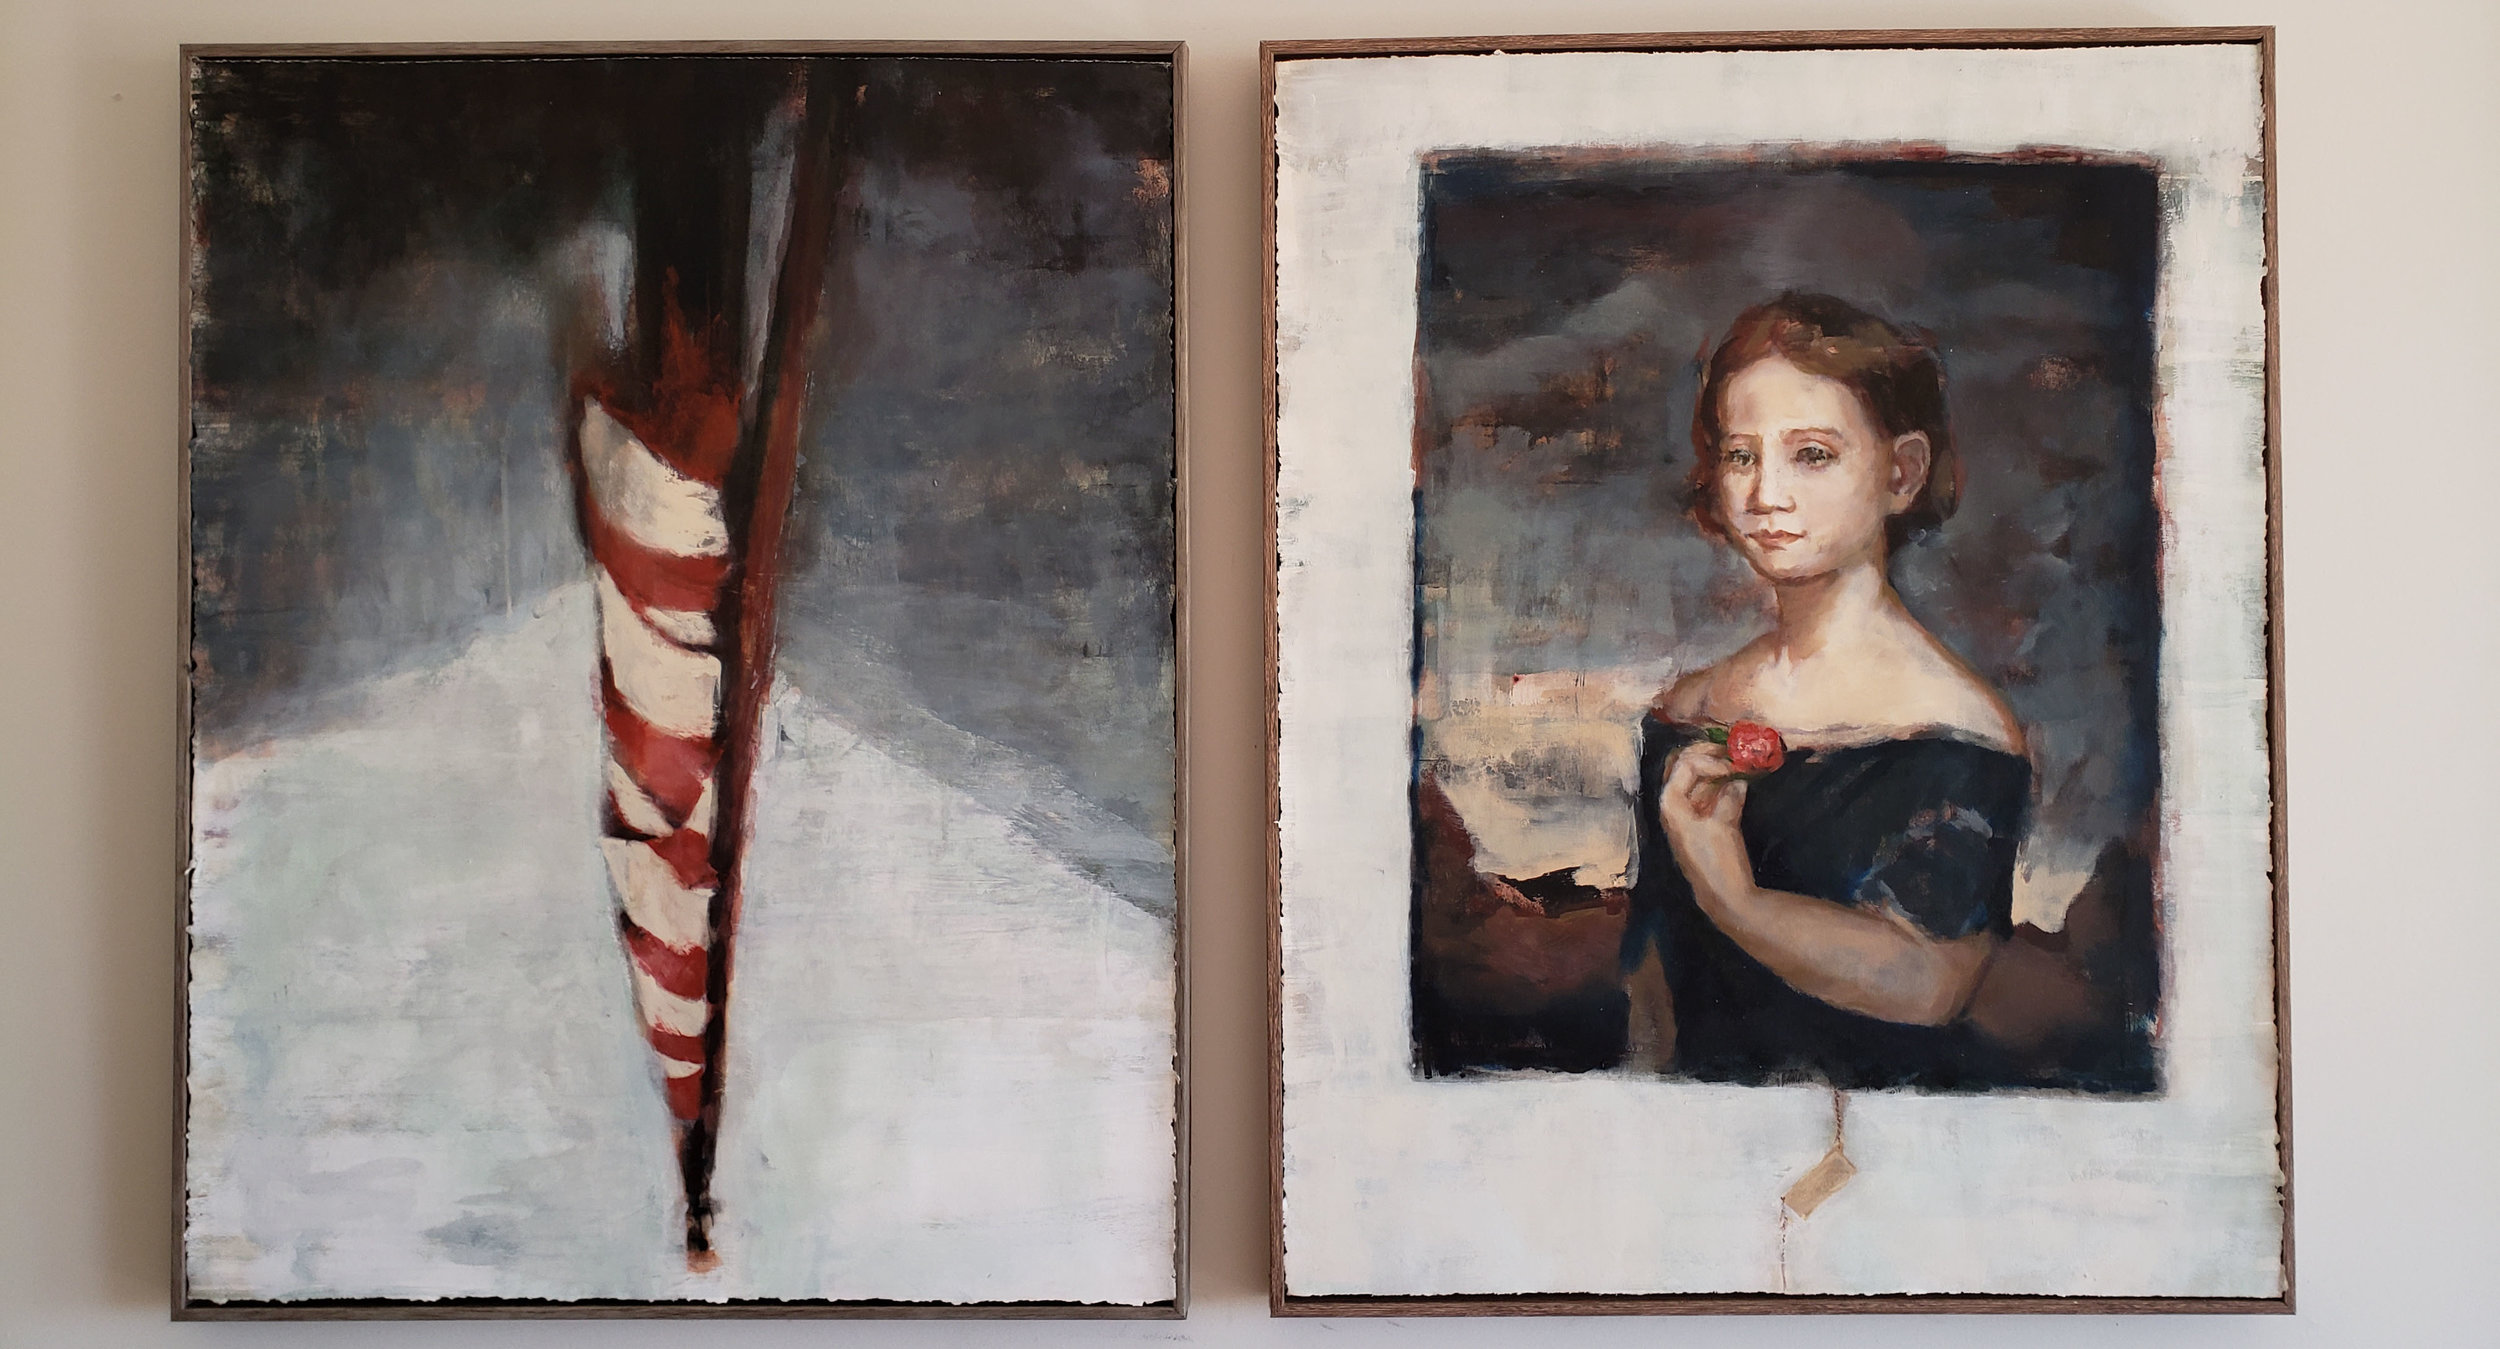 """Lee Mansion Through Artists' Eyes,"" on view at the Marblehead Museum through August 4th, 2018. Inspired by Lydia, a child painted post-mortem in the nursery of the mansion and in relation to what is happening today at the US/Mexican border."